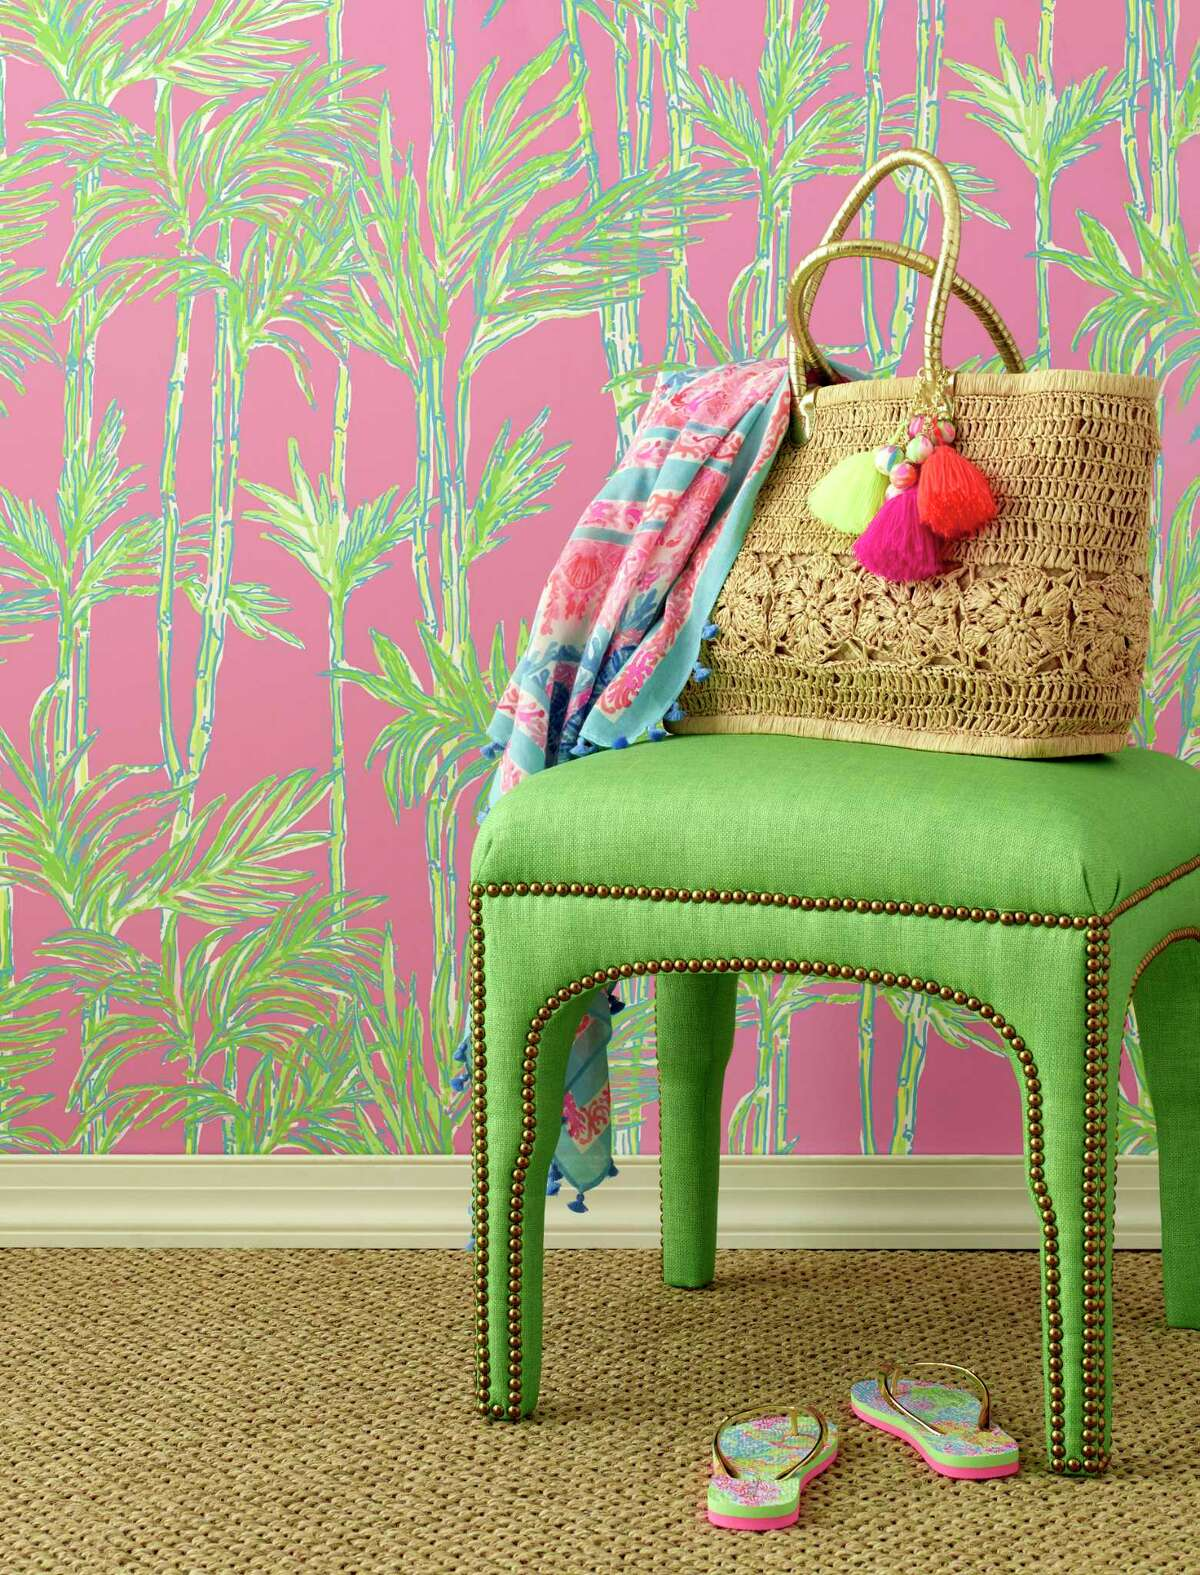 Tropical-themed wallpaper fromLilly Pulitzer II at Lee Jofa, leejofa.com. Starting at $130 per roll, it is available trade-only at the Kravet showroom at the Decorative Center of Houston, 5120 Woodway.